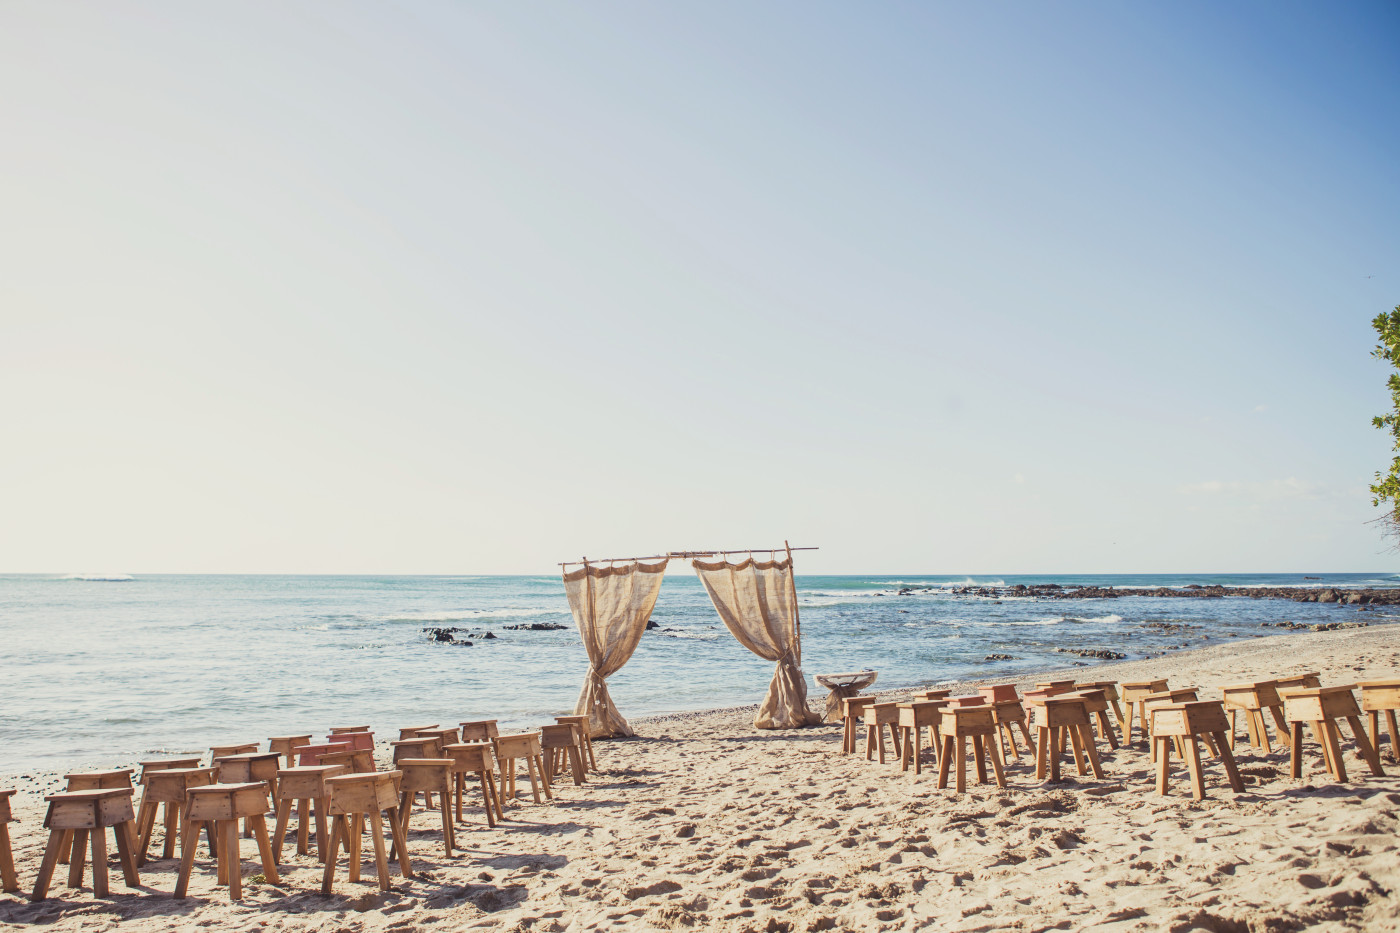 The beach ceremony set up at our Costa Rica wedding